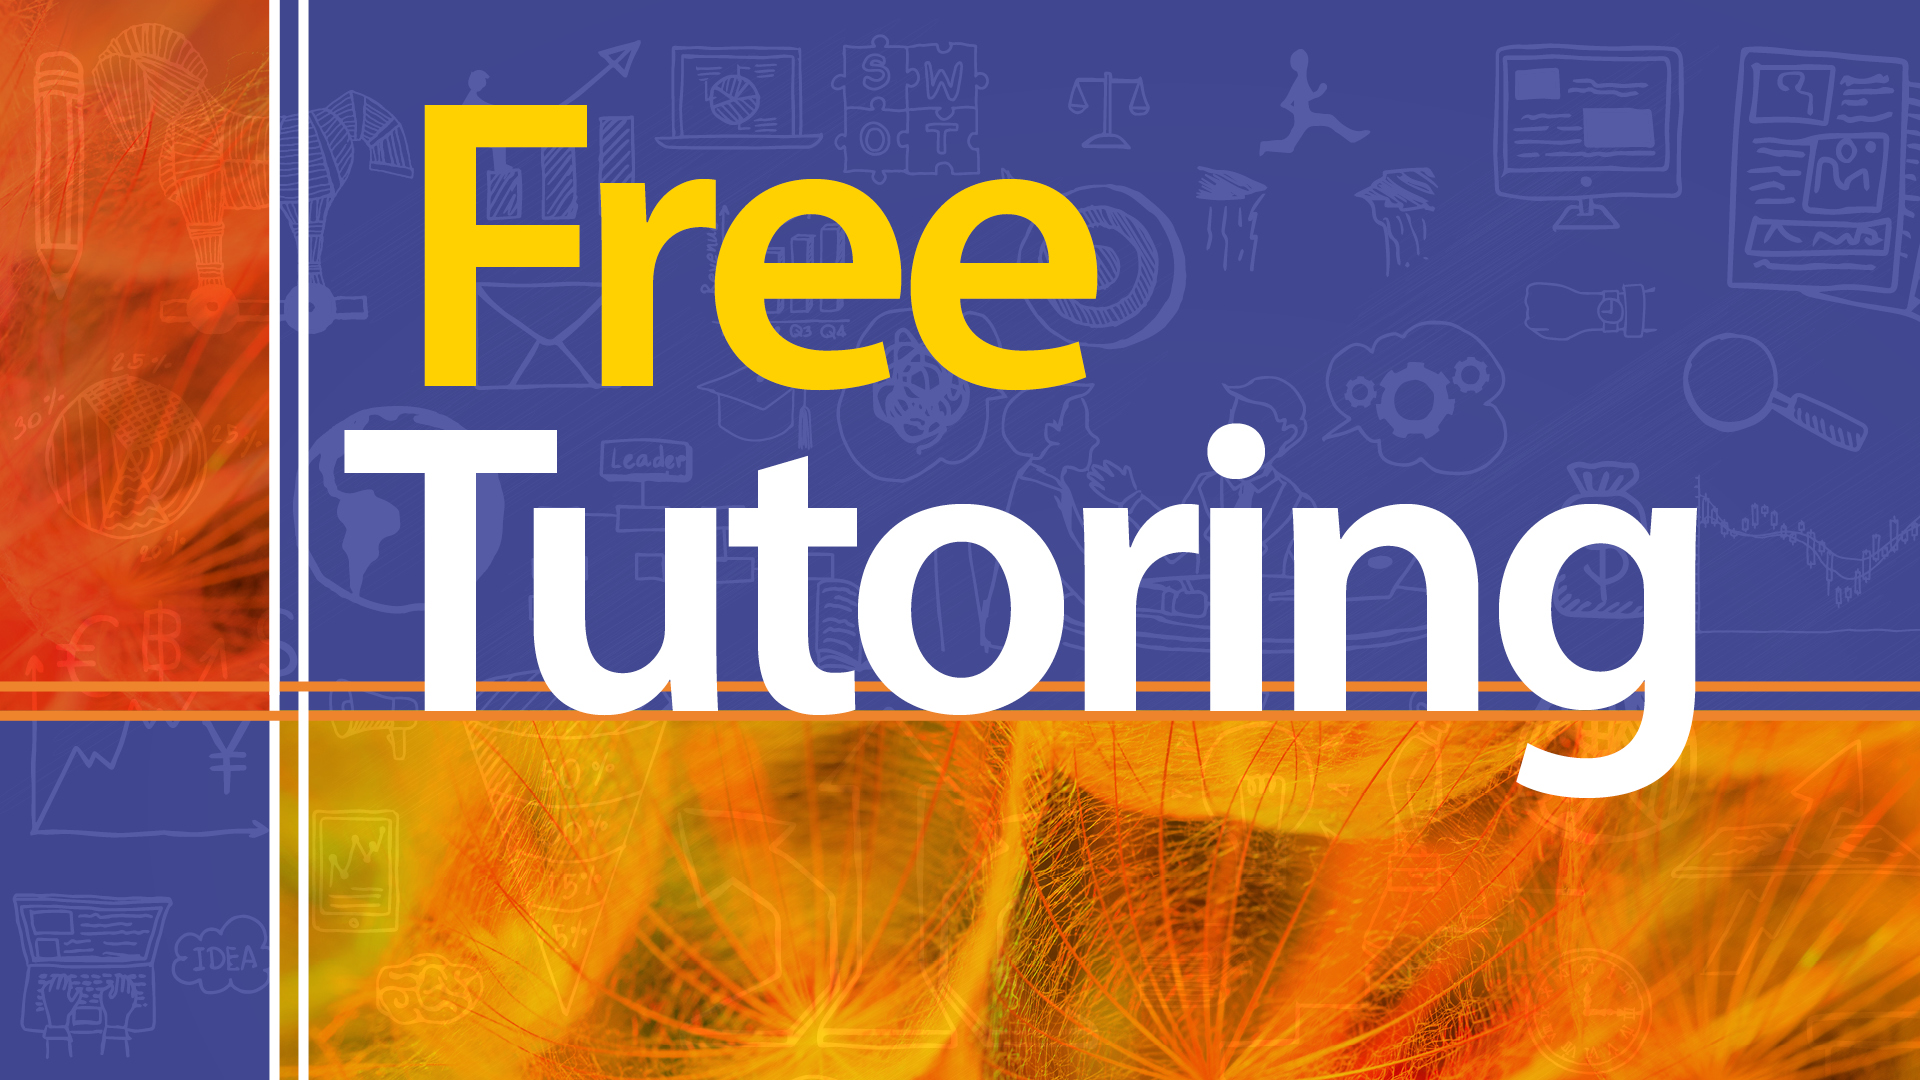 Free Tutoring is available